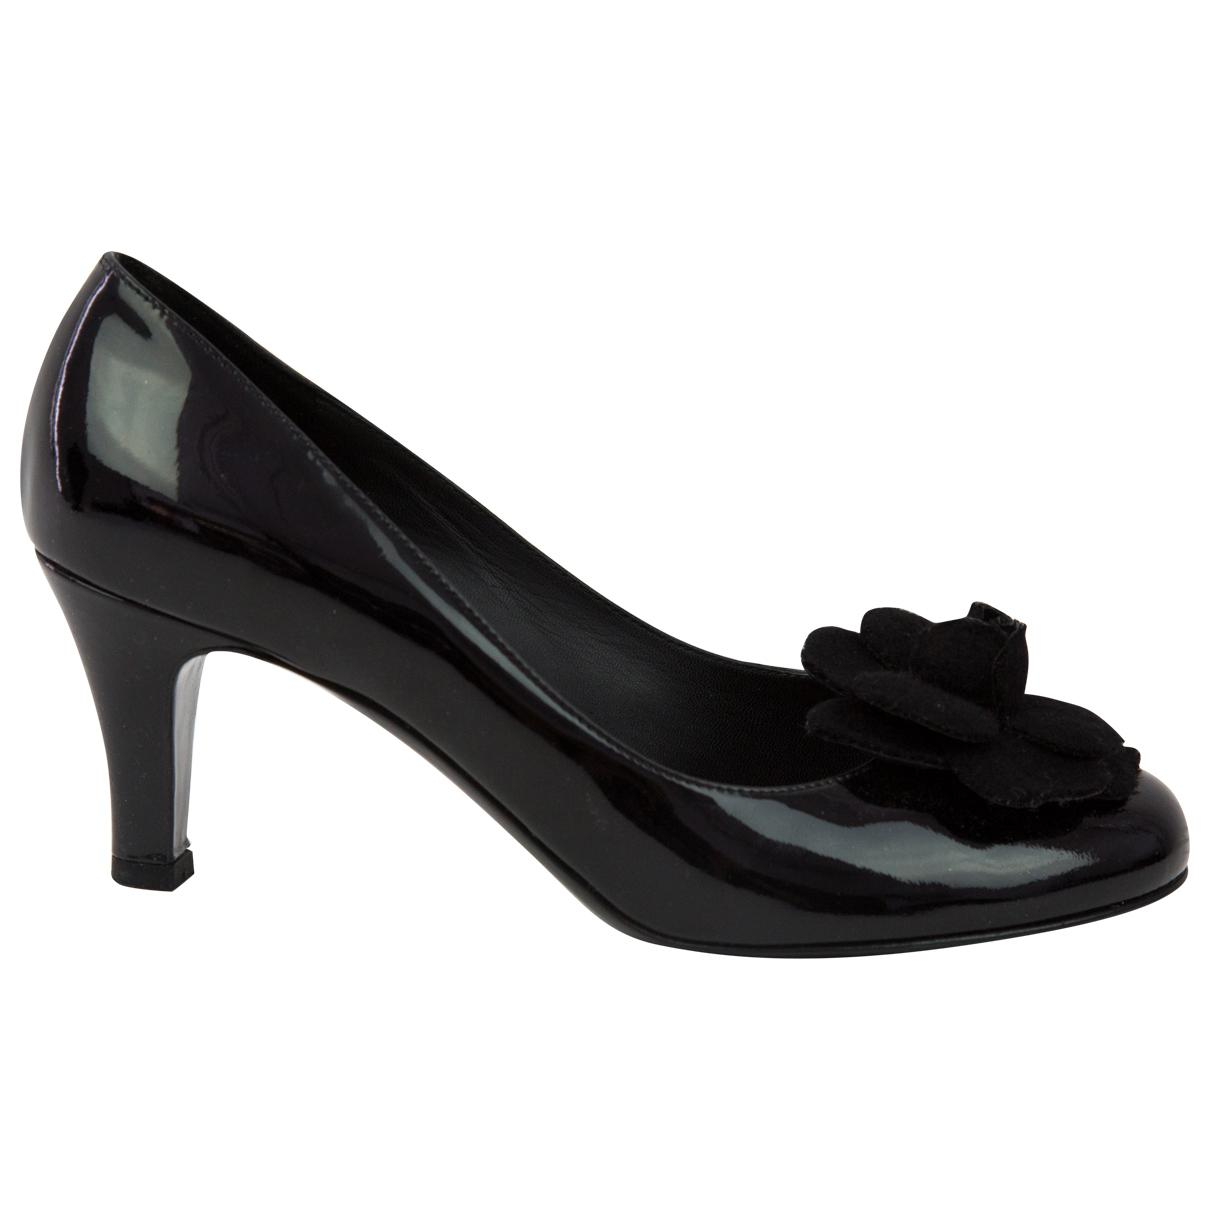 Pre-owned - PATENT LEATHER COURT SHOES Chanel Q1e2kk